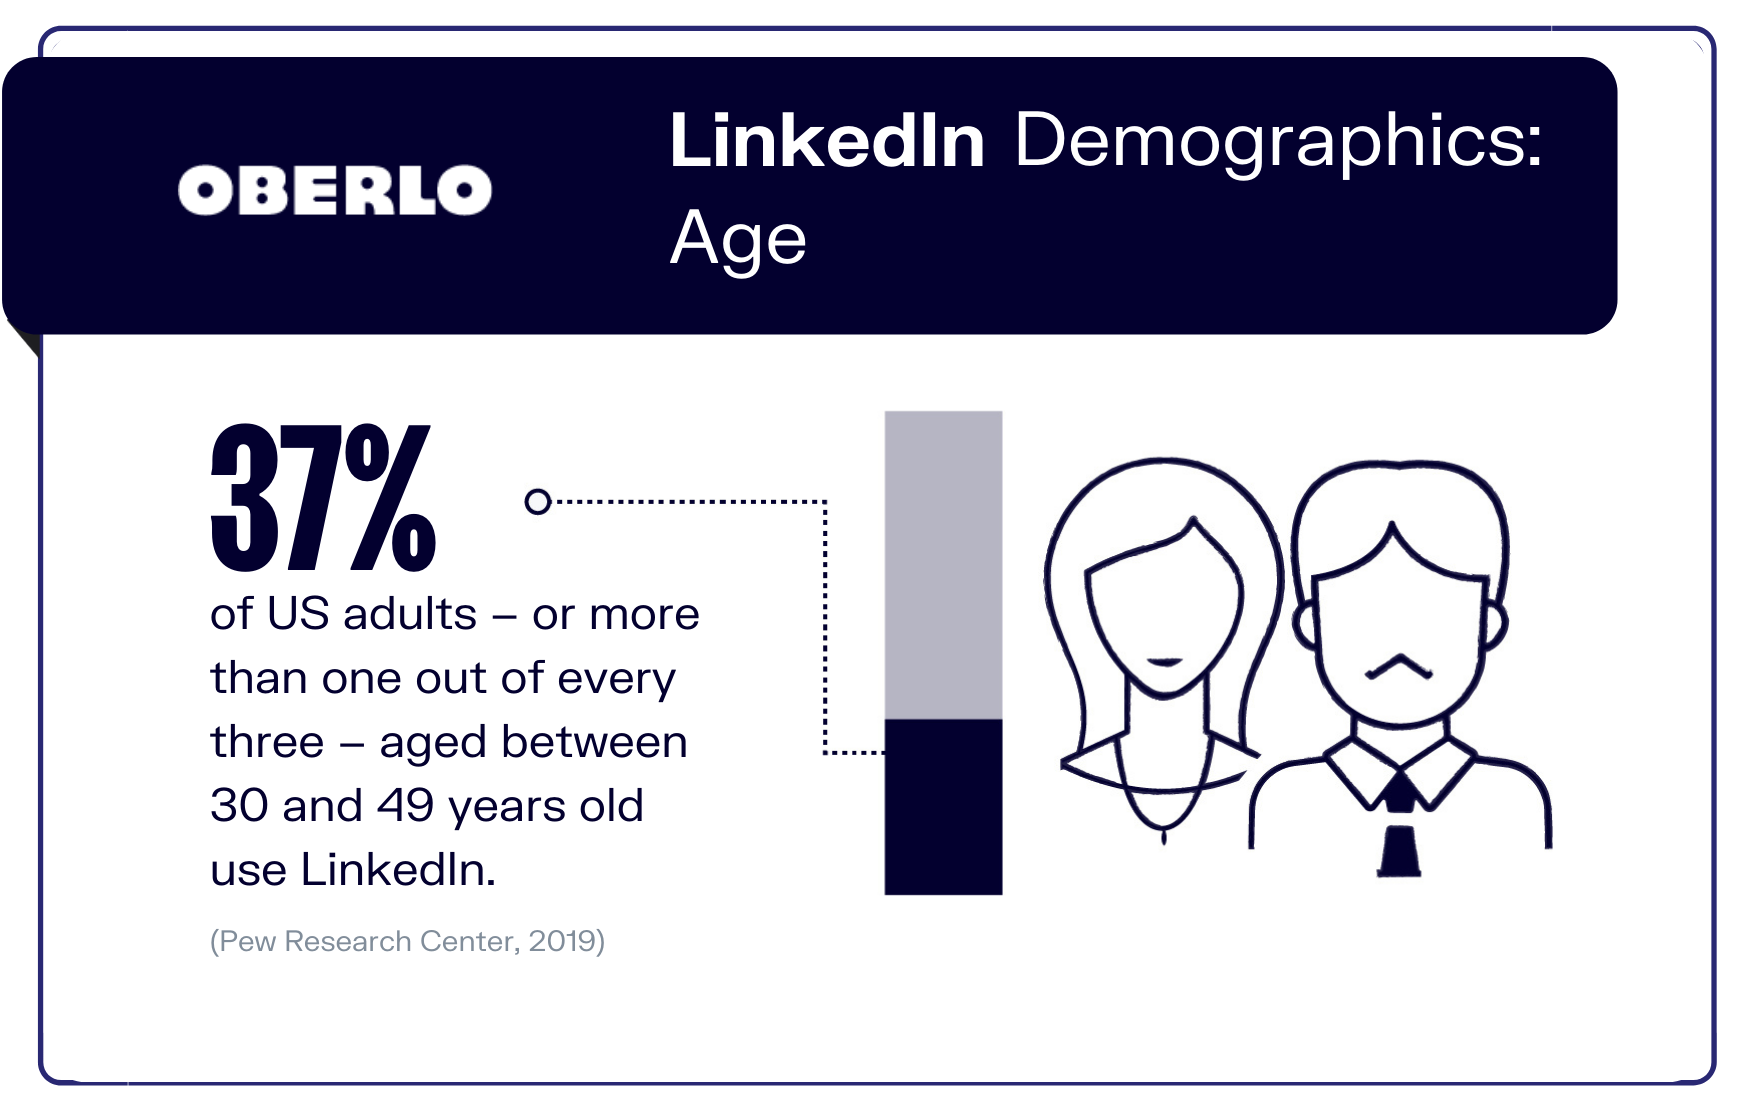 LinkedIn Demographics: Age graphic